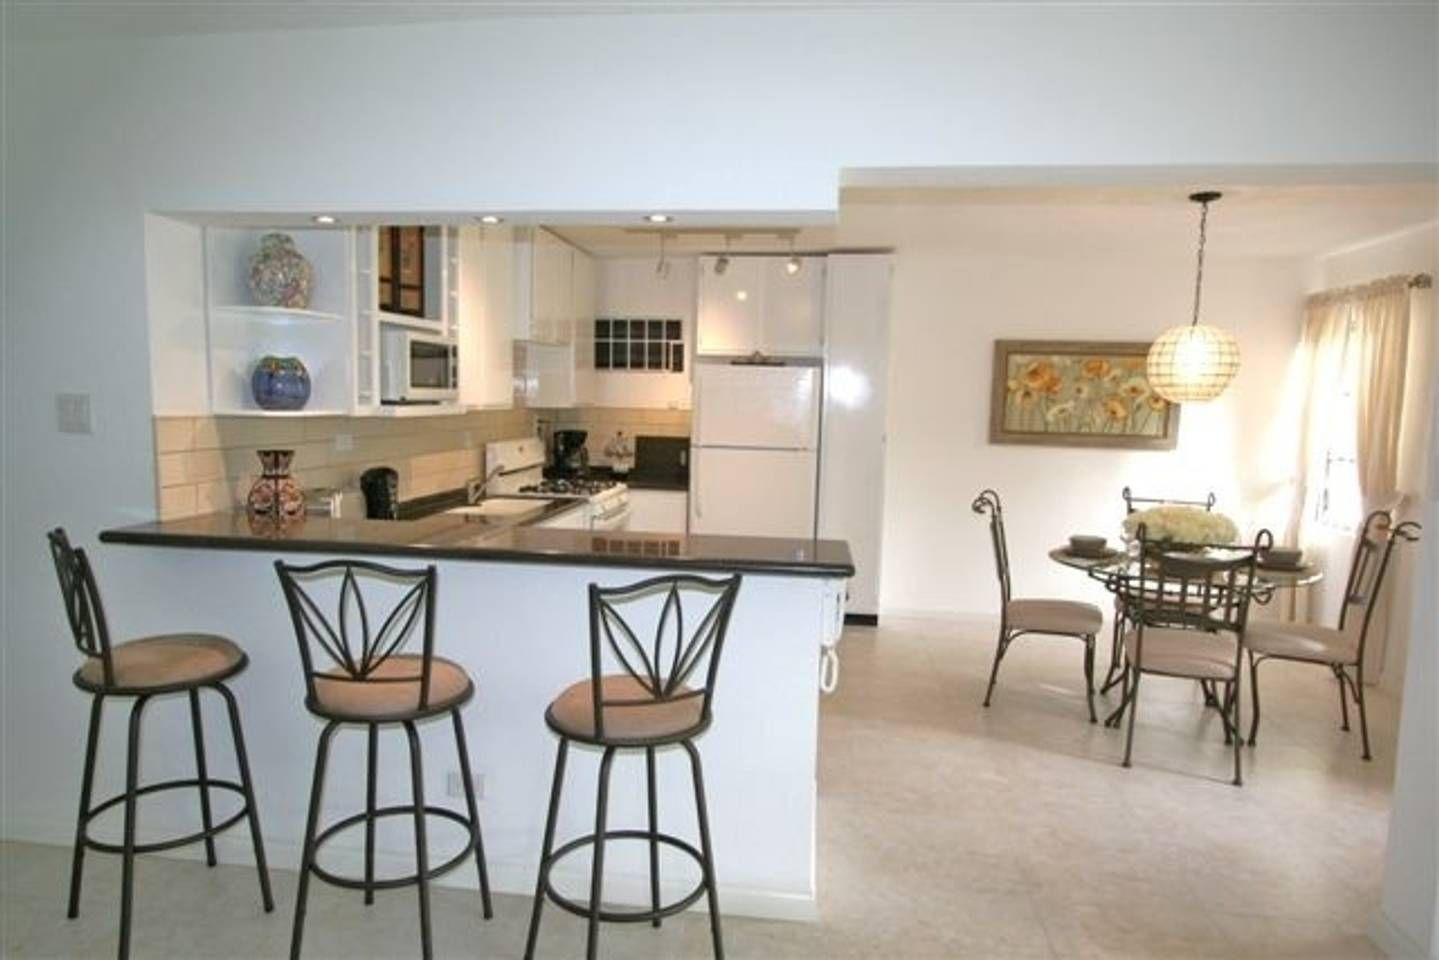 Apartment, South Coast, Barbados Apartments for Rent in